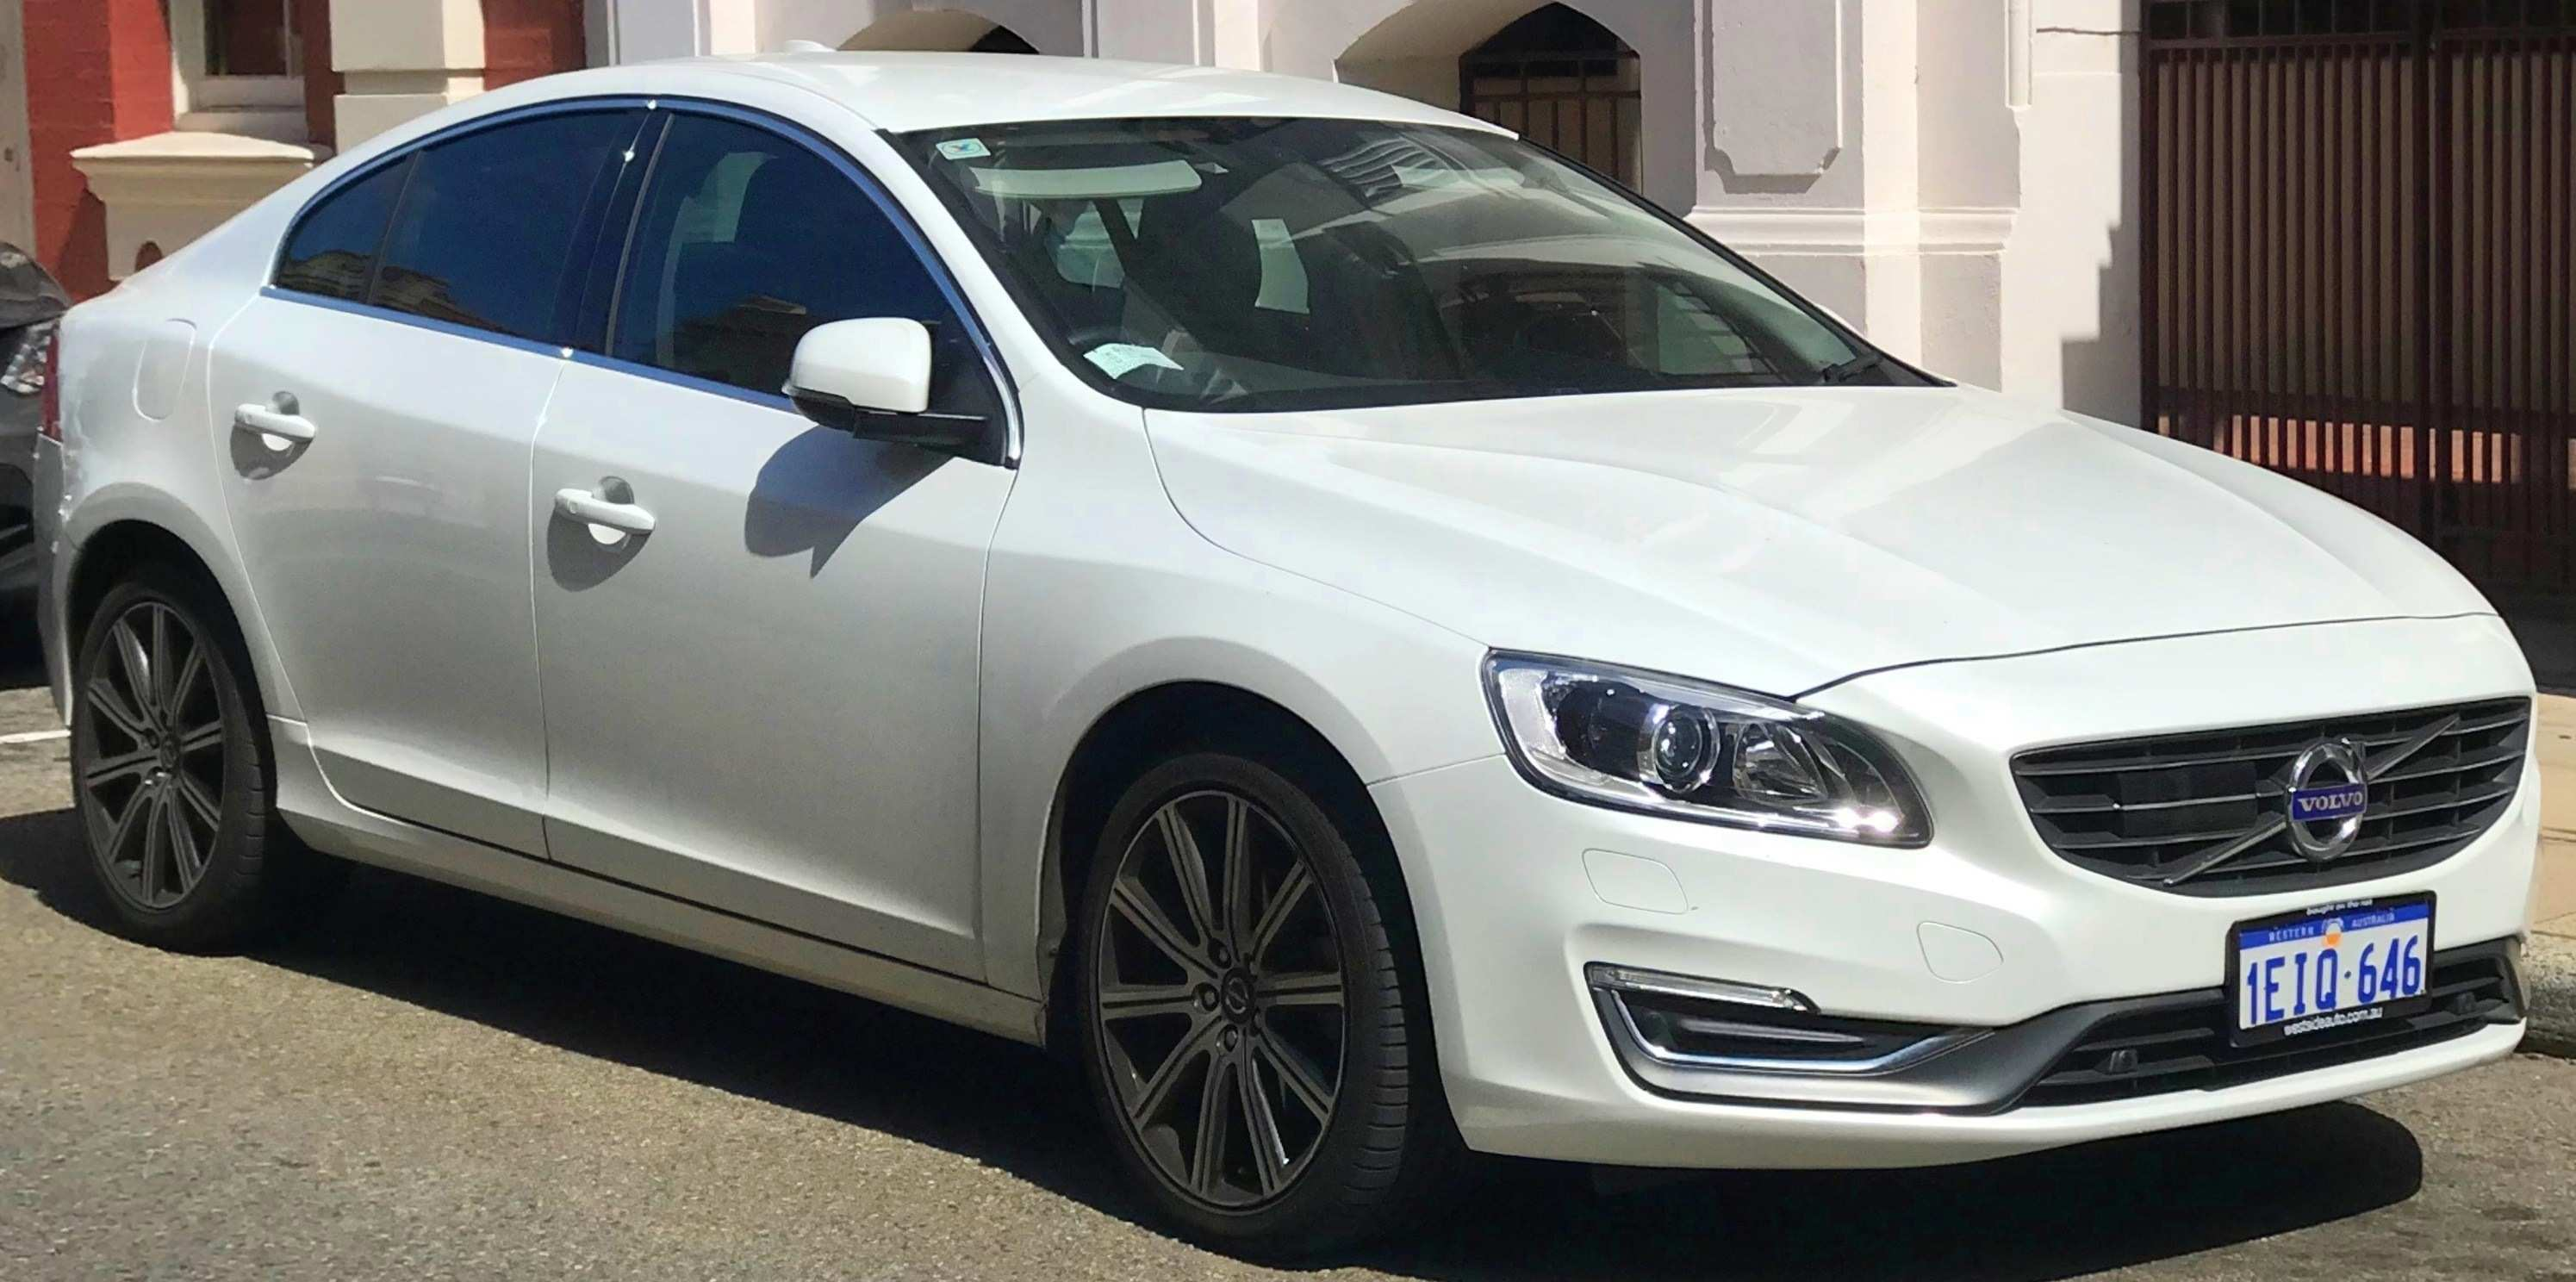 71 All New 2019 Volvo S80 Price And Release Date